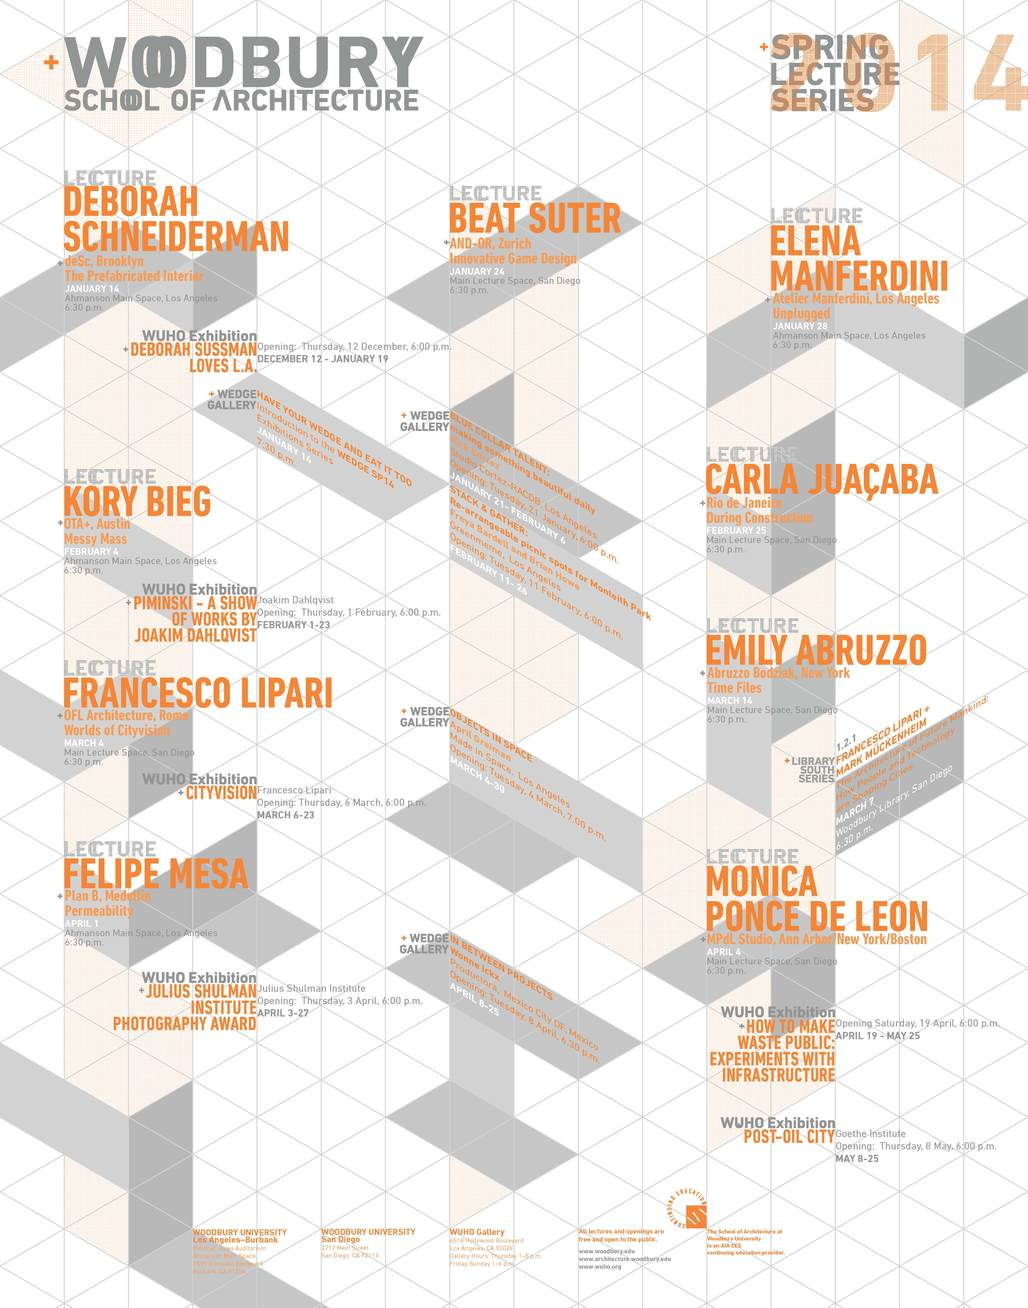 Woodbury Architecture Spring 14 Lecture Series. Image courtesy of Woodbury School of Architecture.